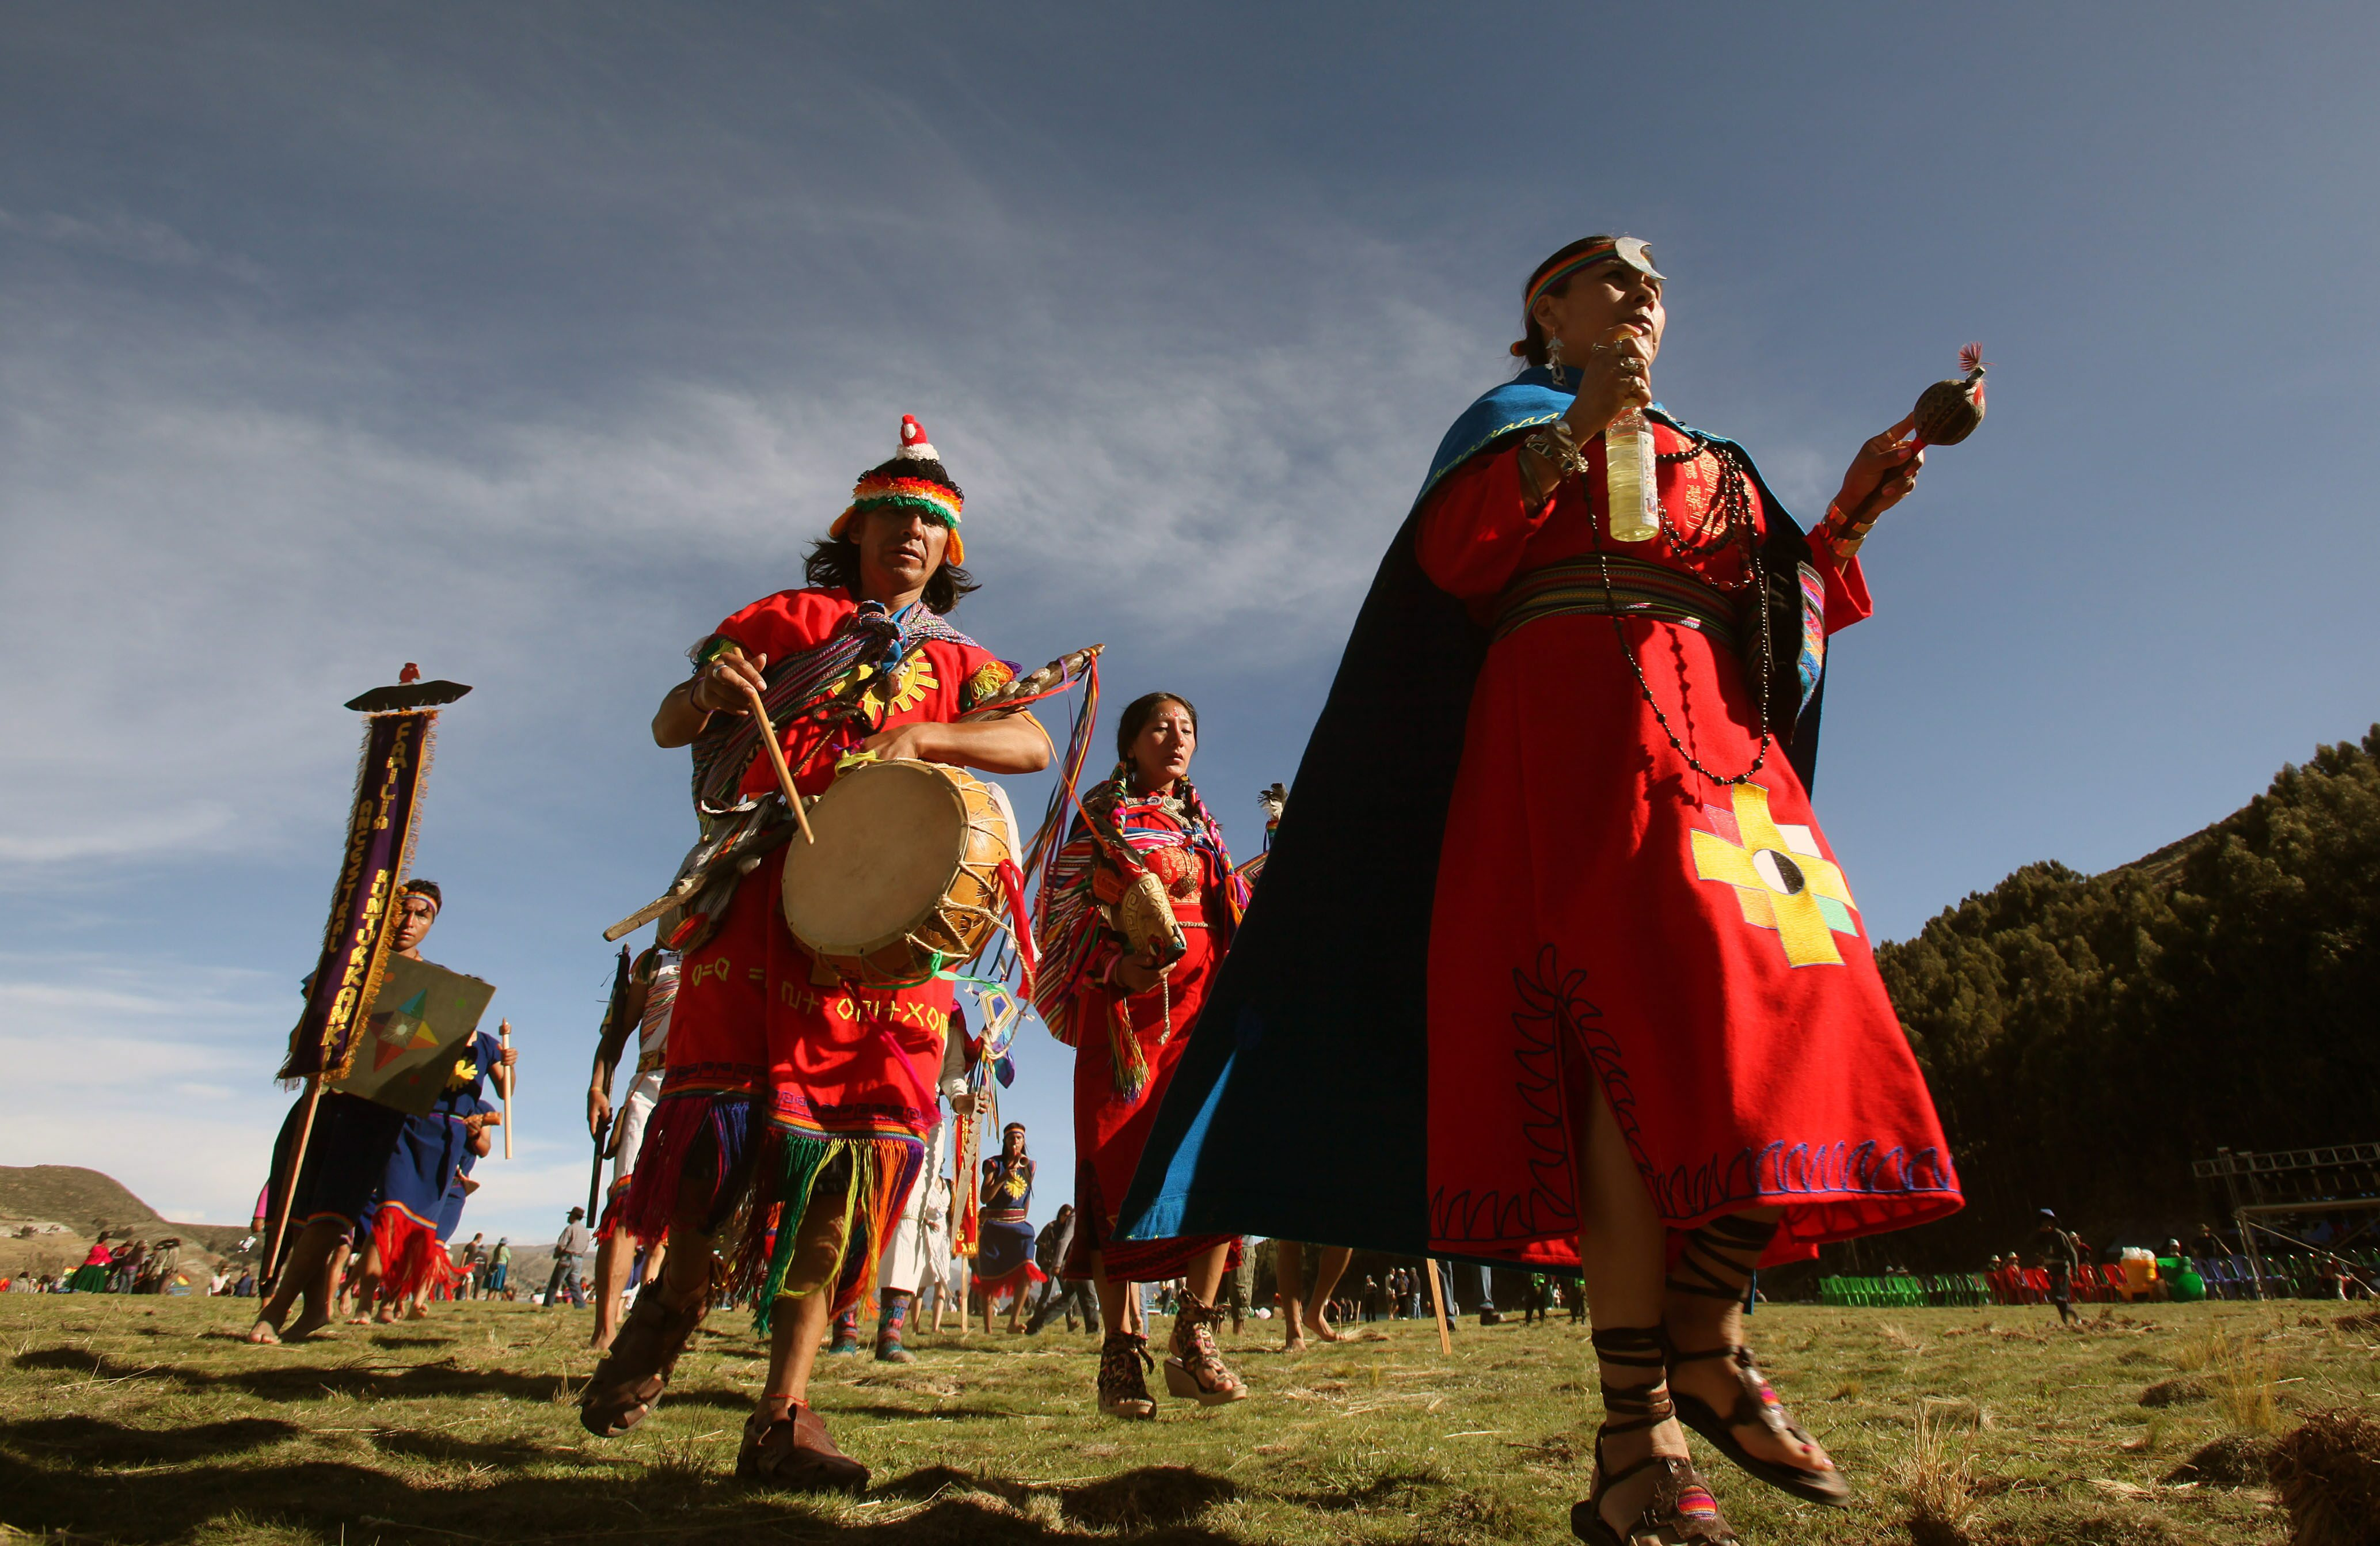 Members of Peruvian ancestral Kunturkanki indigenous community participate in a traditional marriage at the Isla del Sol (Island of the Sun) in the Titicaca Lake in Bolivia on December 20, 2012.